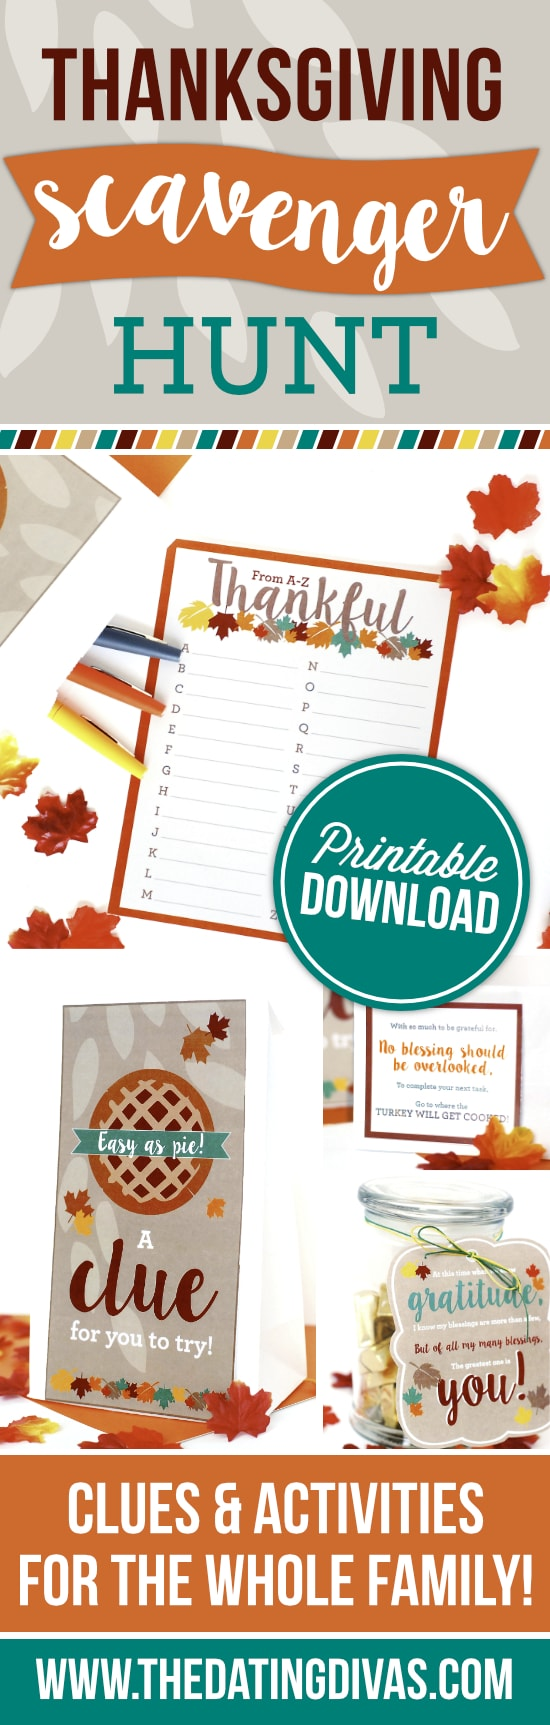 A fun and FREE Thanksgiving scavenger hunt that's perfect for young and old alike!! Looks like so much fun! #thedatingdivas #thanksgivingscavengerhunt #thanksgivingriddlesforadults #thanksgivingtreasurehunt